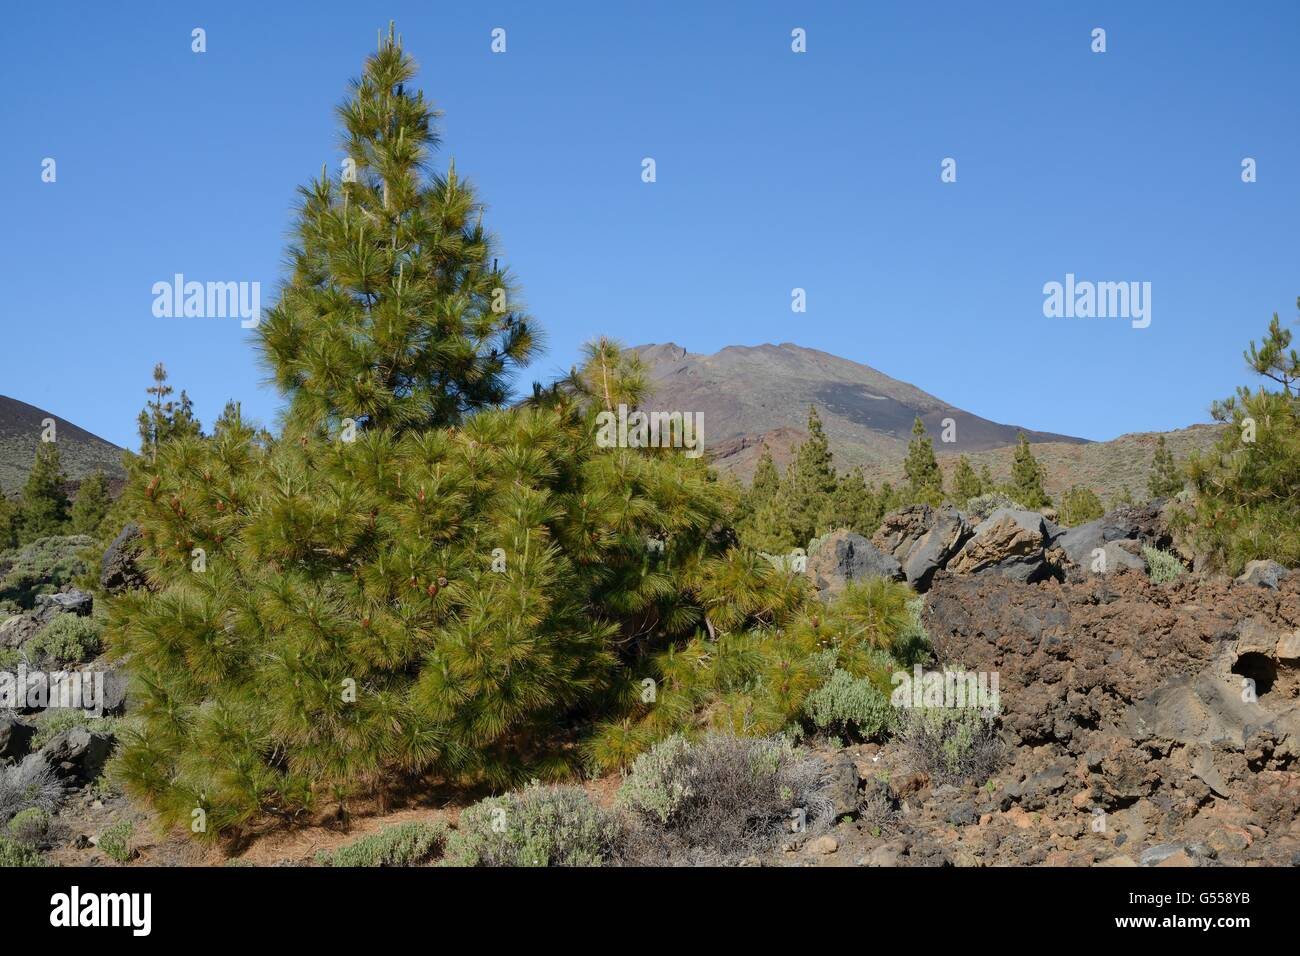 Canary island pines (Pinus canariensis), endemic to the Canaries, growing and among old volcanic lava flows below - Stock Image